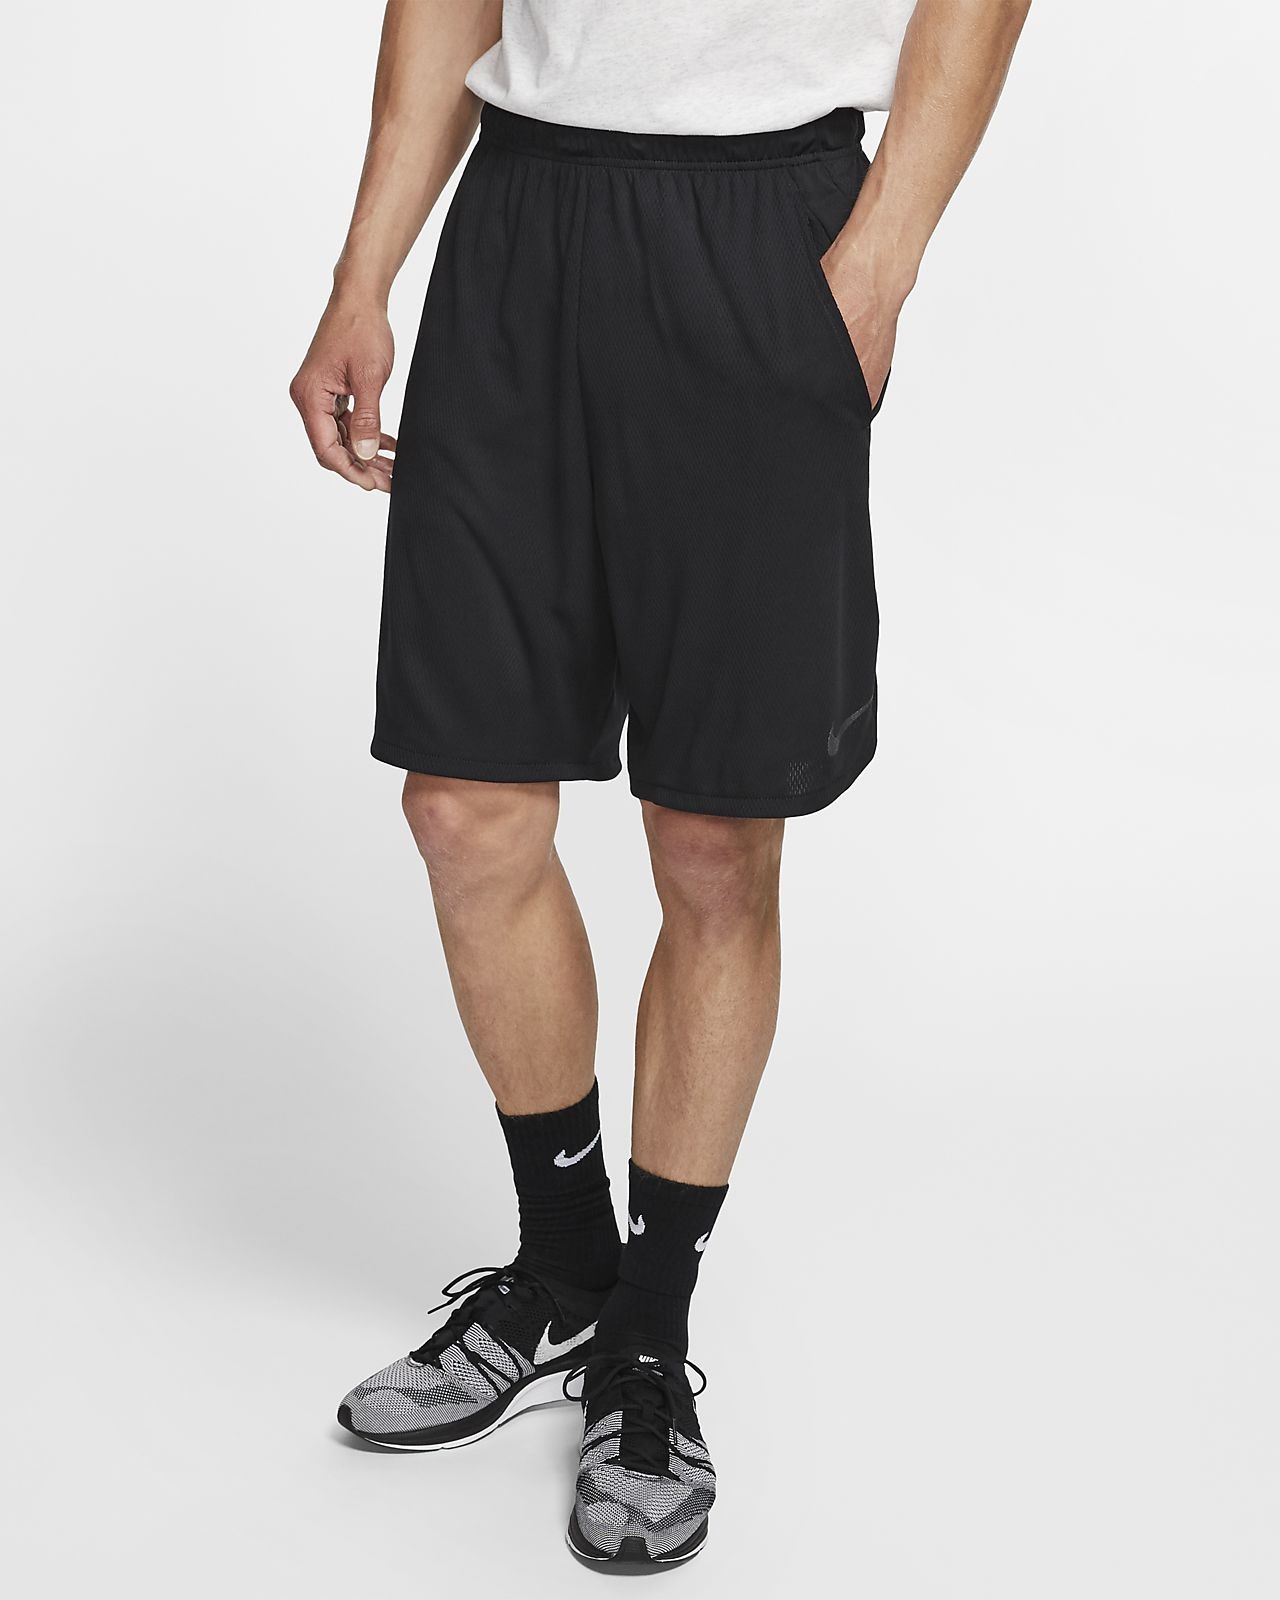 Nike Mens Training Shorts - Nike 9